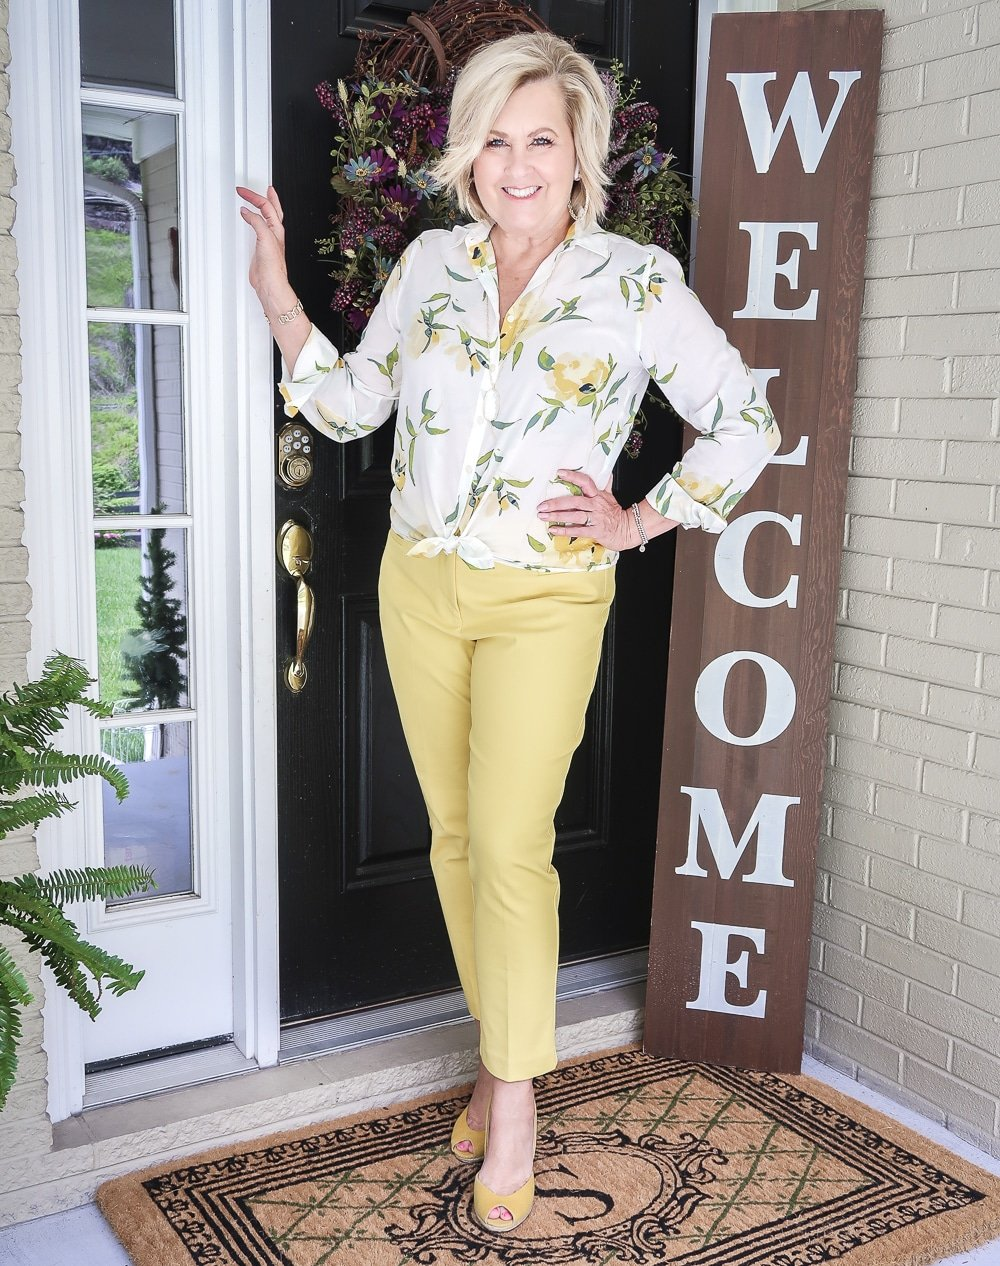 Fashion Blogger 50 Is Not Old is looking sunny in this white and yellow shirt and yellow ankle pants, and a pair of yellow espadrilles from Michael Kors